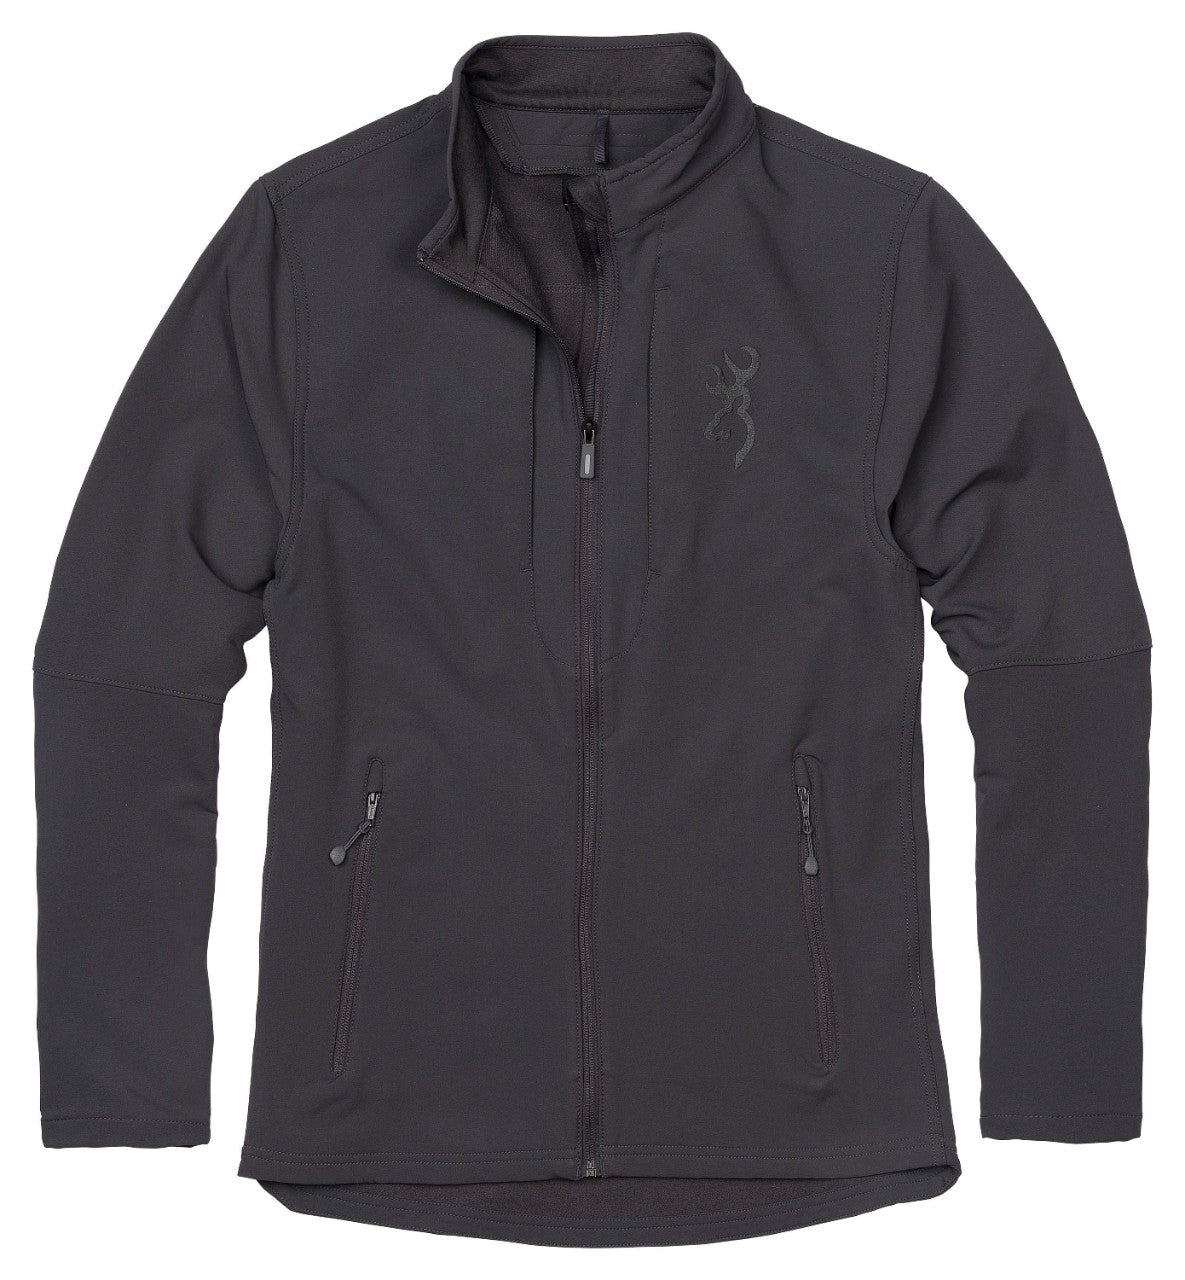 Hell's Canyon Speed Javelin-FM Jacket